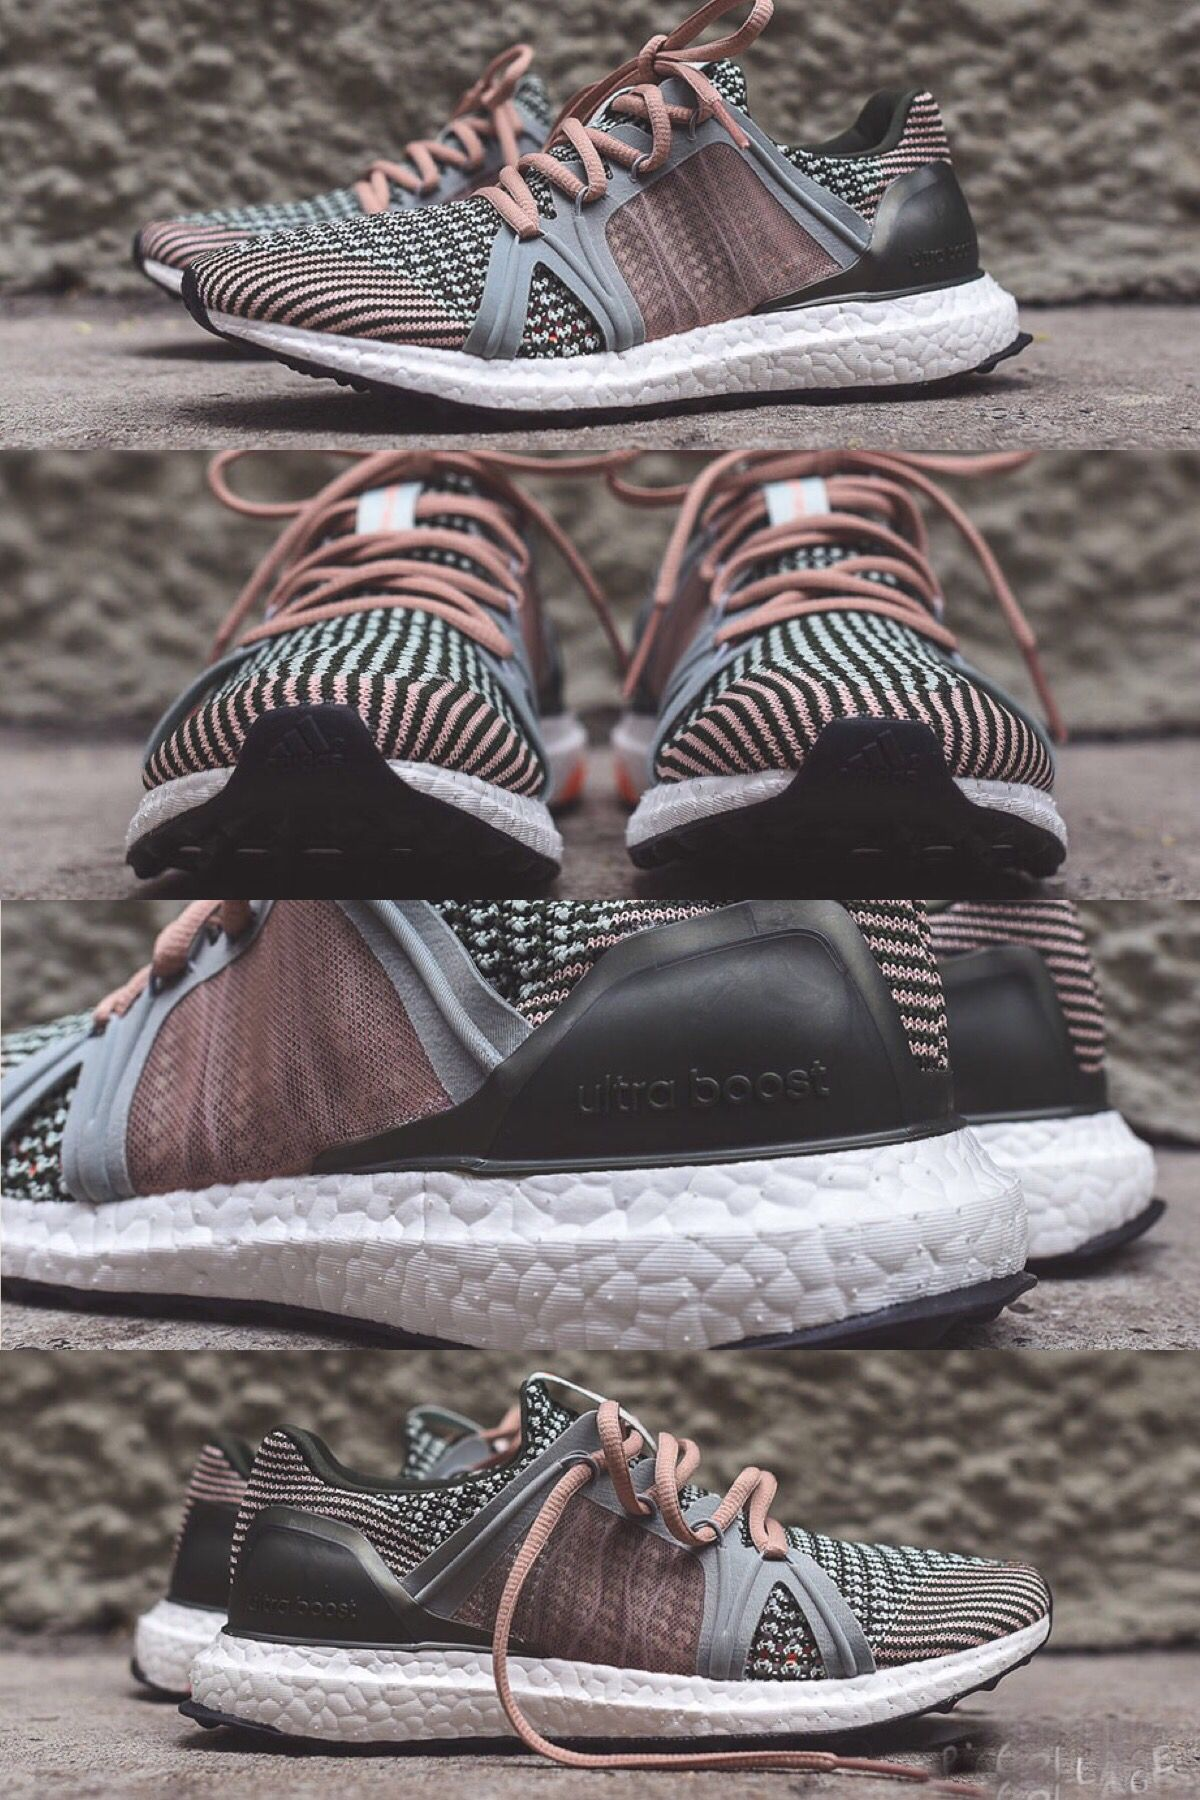 best service 4b962 edea9 THIS ADIDAS ULTRA BOOST GETS A COLLABORATION These are designed by Stella  McCartney, a long-time adidas partner.  LaceMeUpNews